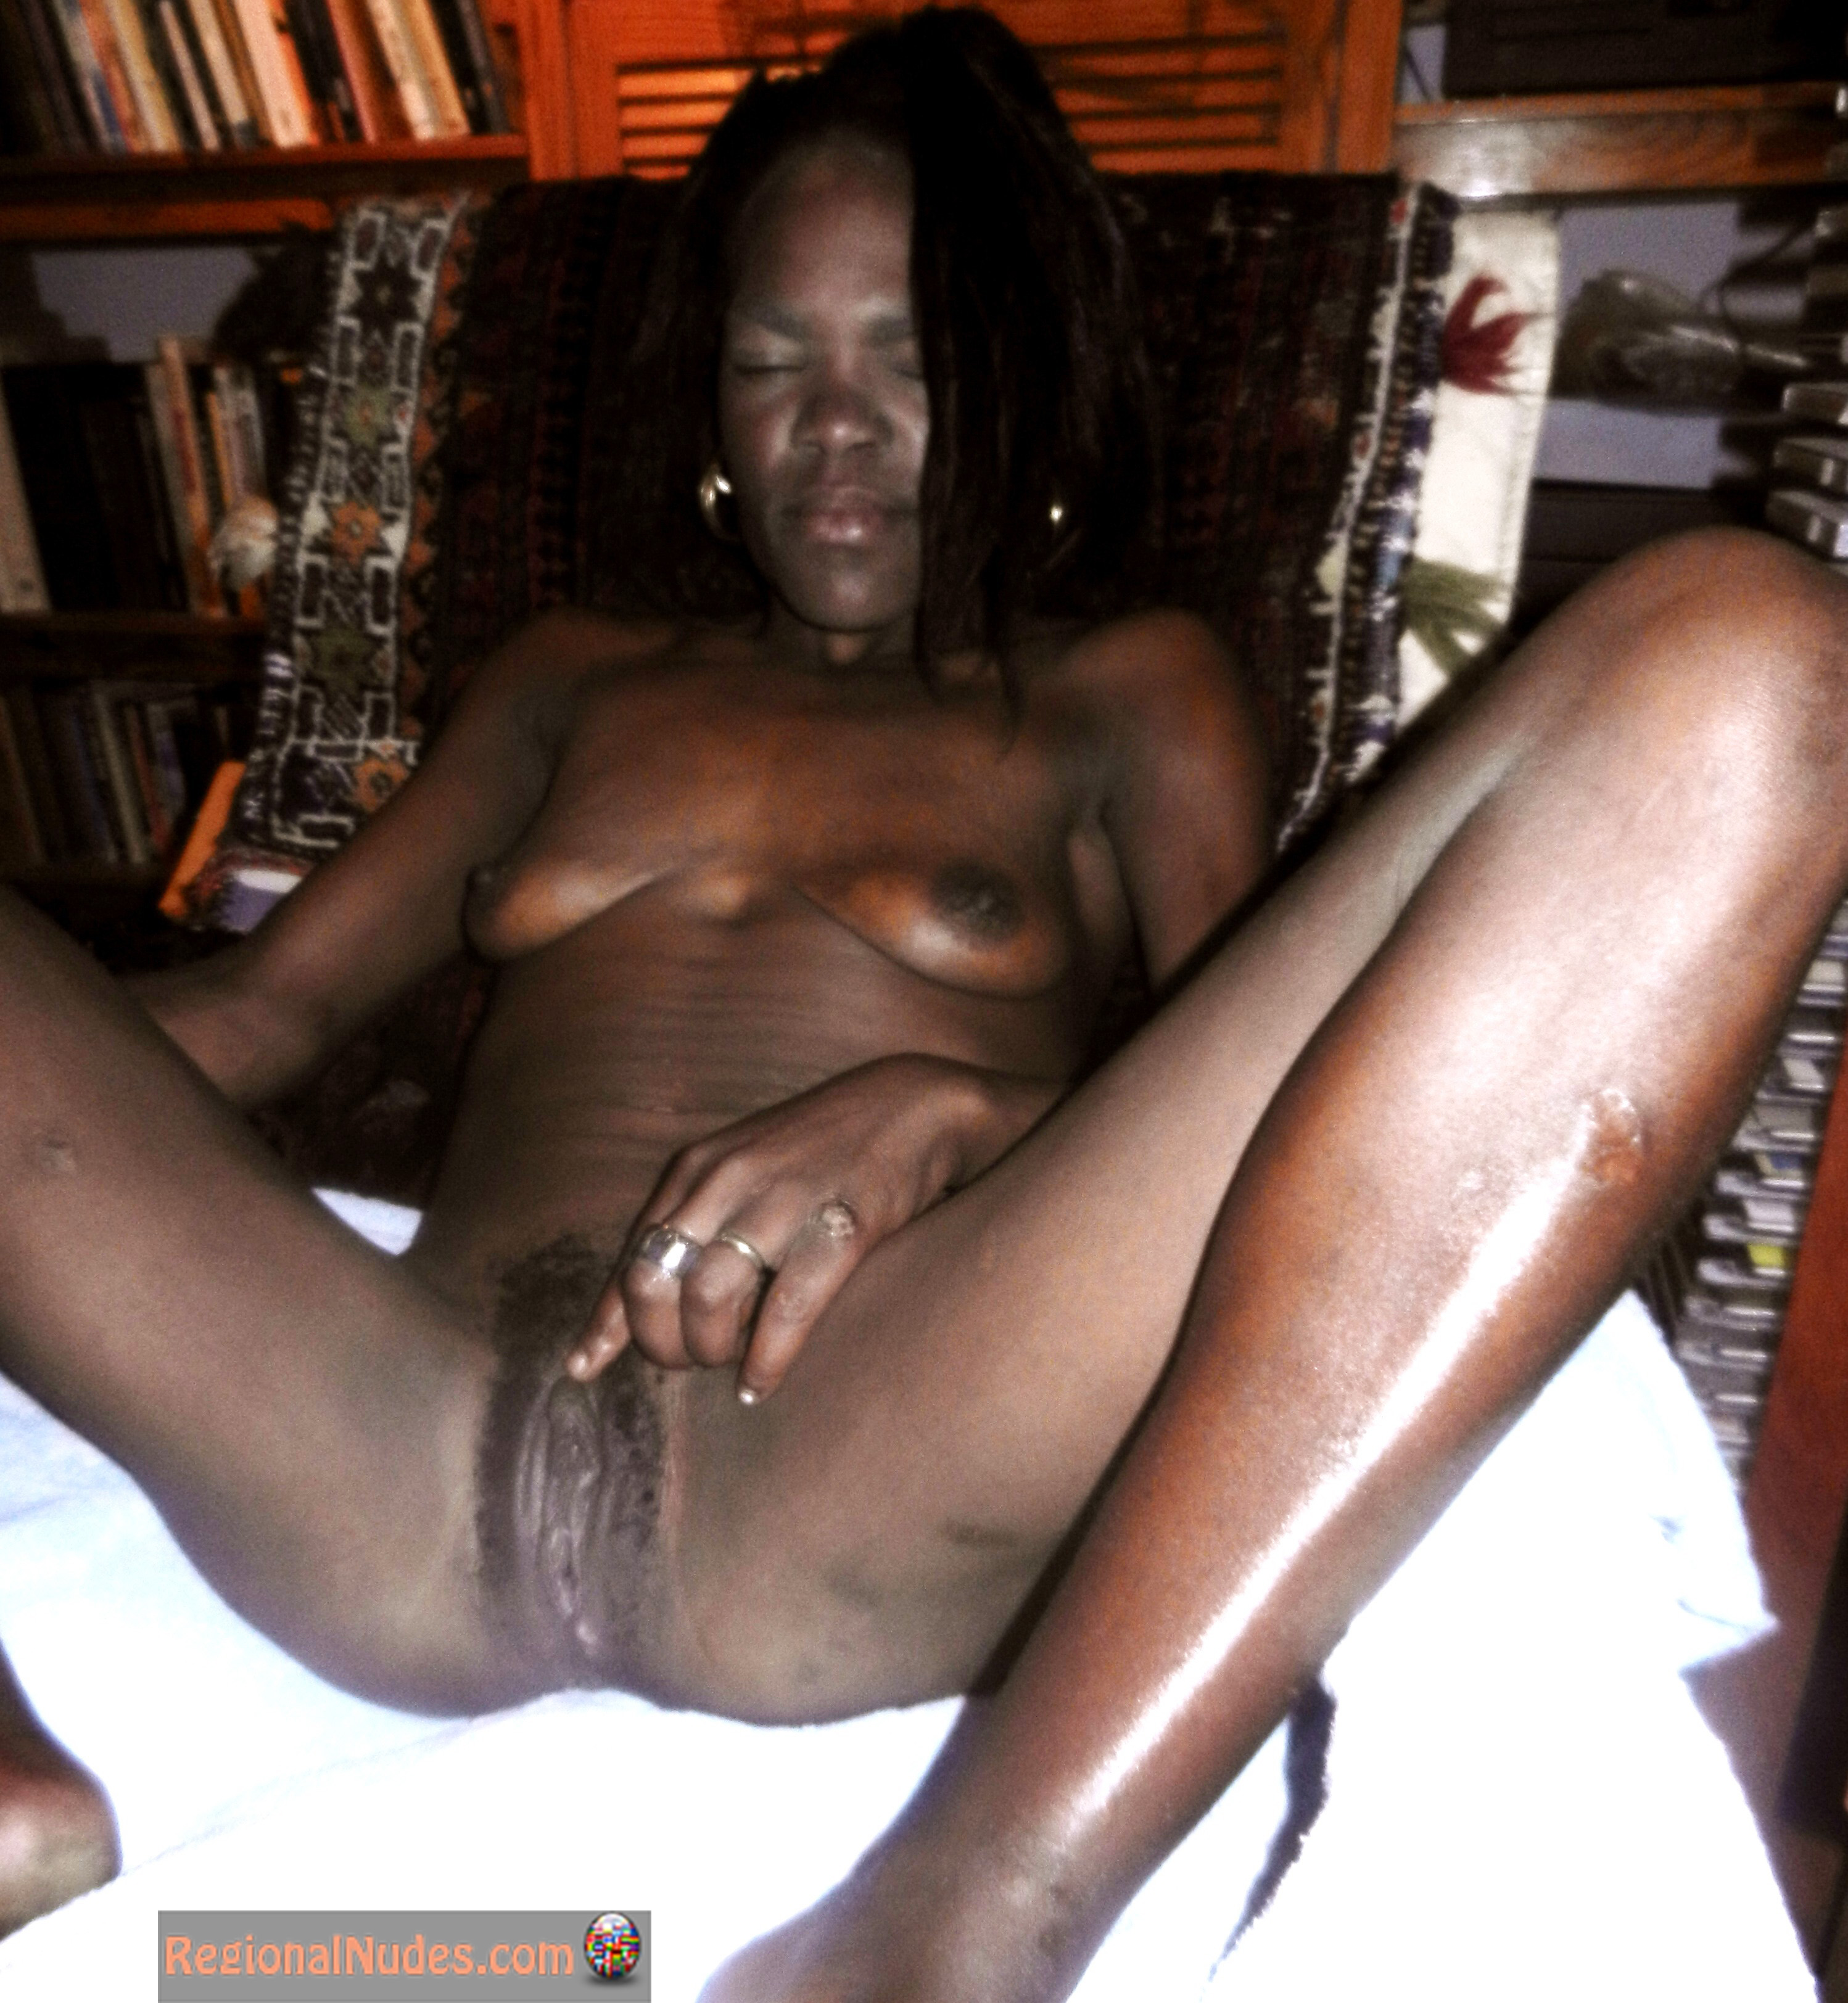 Very black africa girl pussy